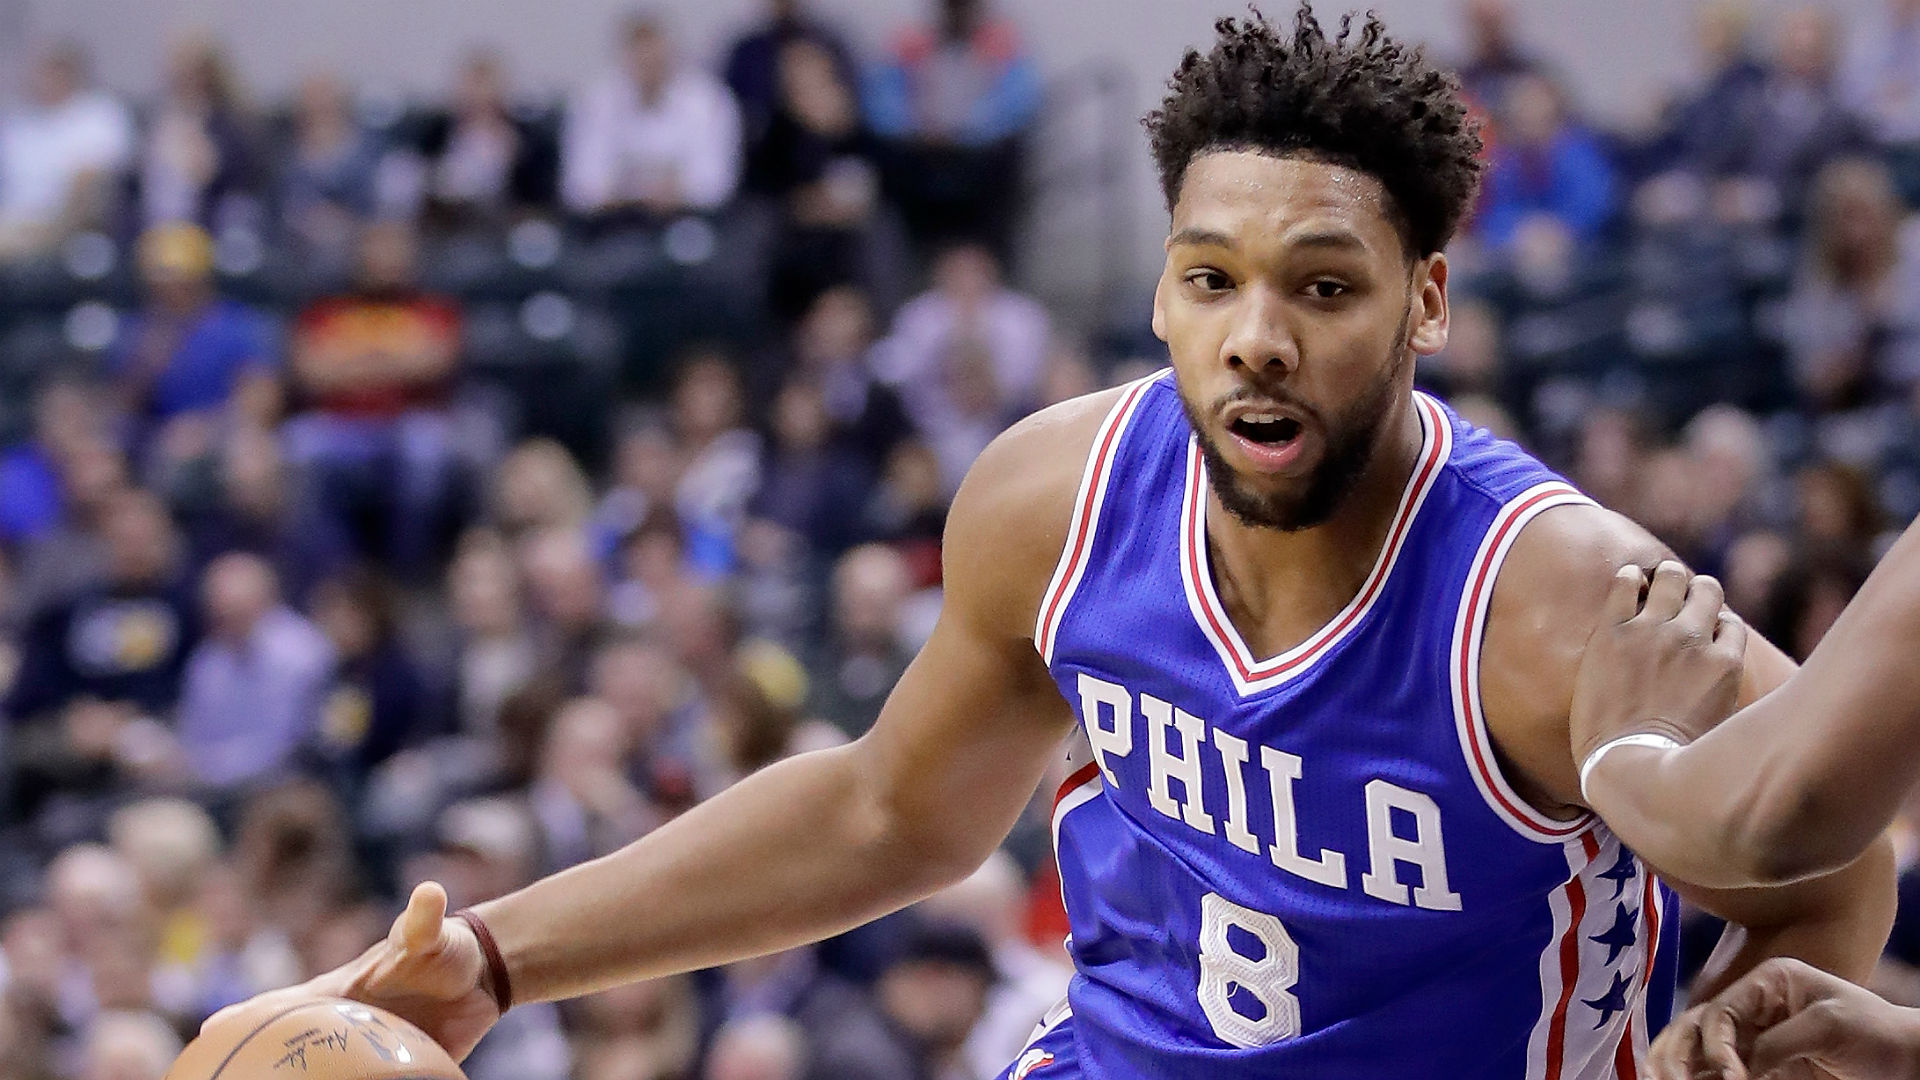 Jahlil Okafor did not travel with 76ers to Charlotte